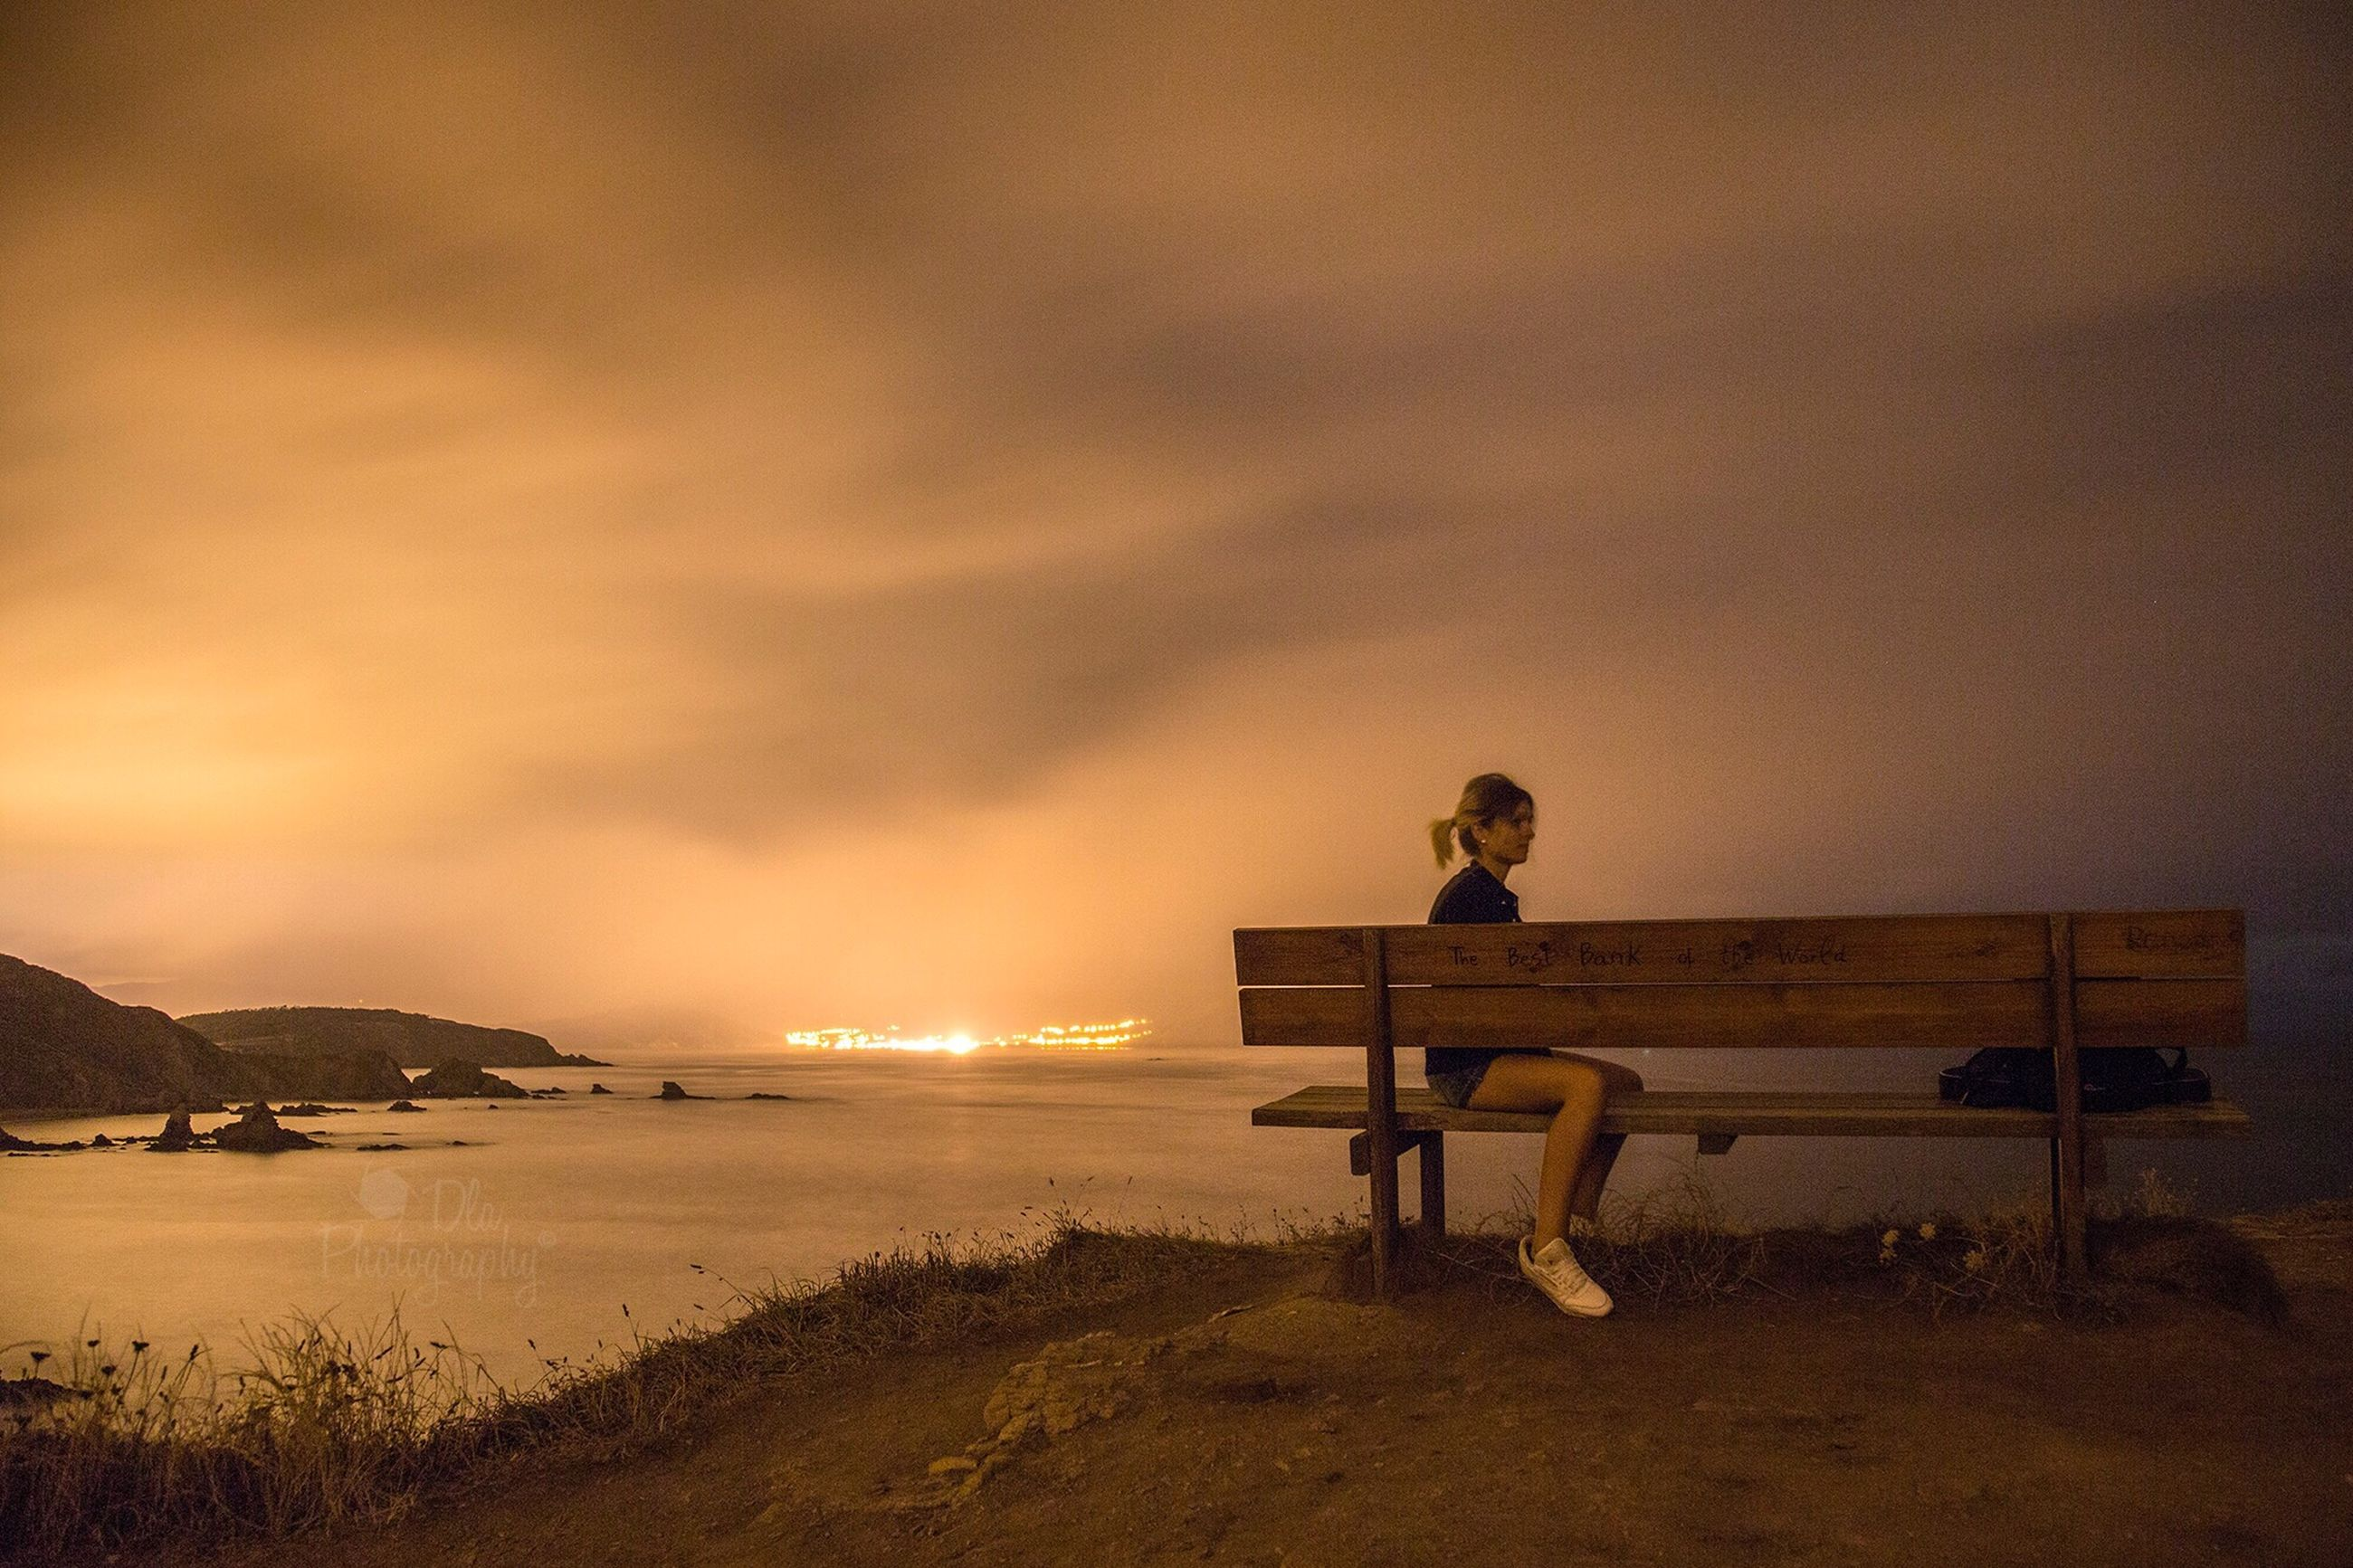 bench, sitting, rear view, men, full length, cloud, relaxation, water, illuminated, night, cloud - sky, sky, tranquil scene, orange color, tranquility, solitude, calm, sea, scenics, remote, escapism, person, outdoors, park bench